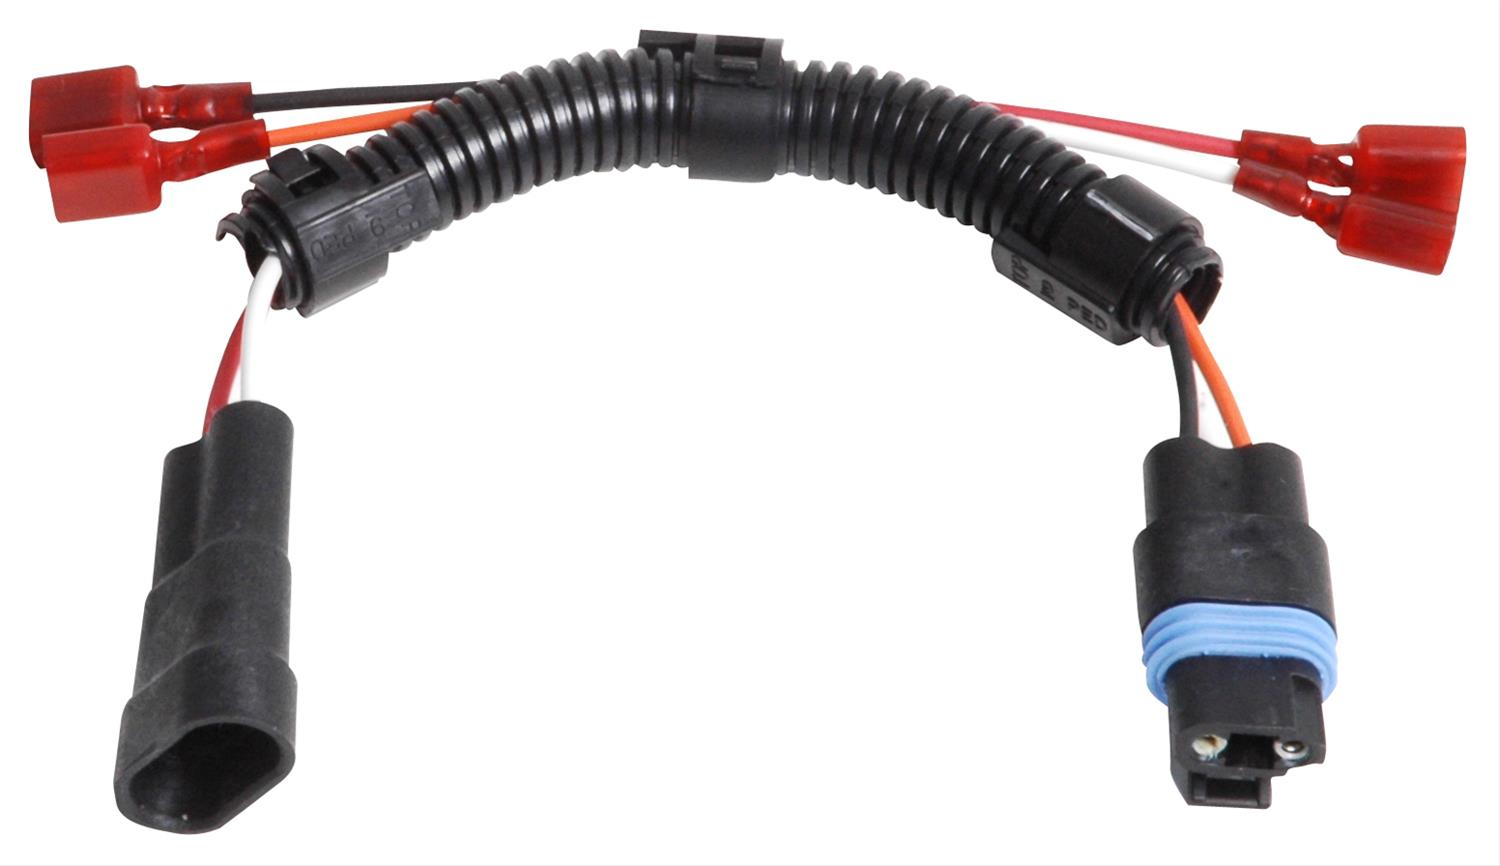 hight resolution of msd ignition extension wiring harnesses 8889 free shipping on orders over 99 at summit racing